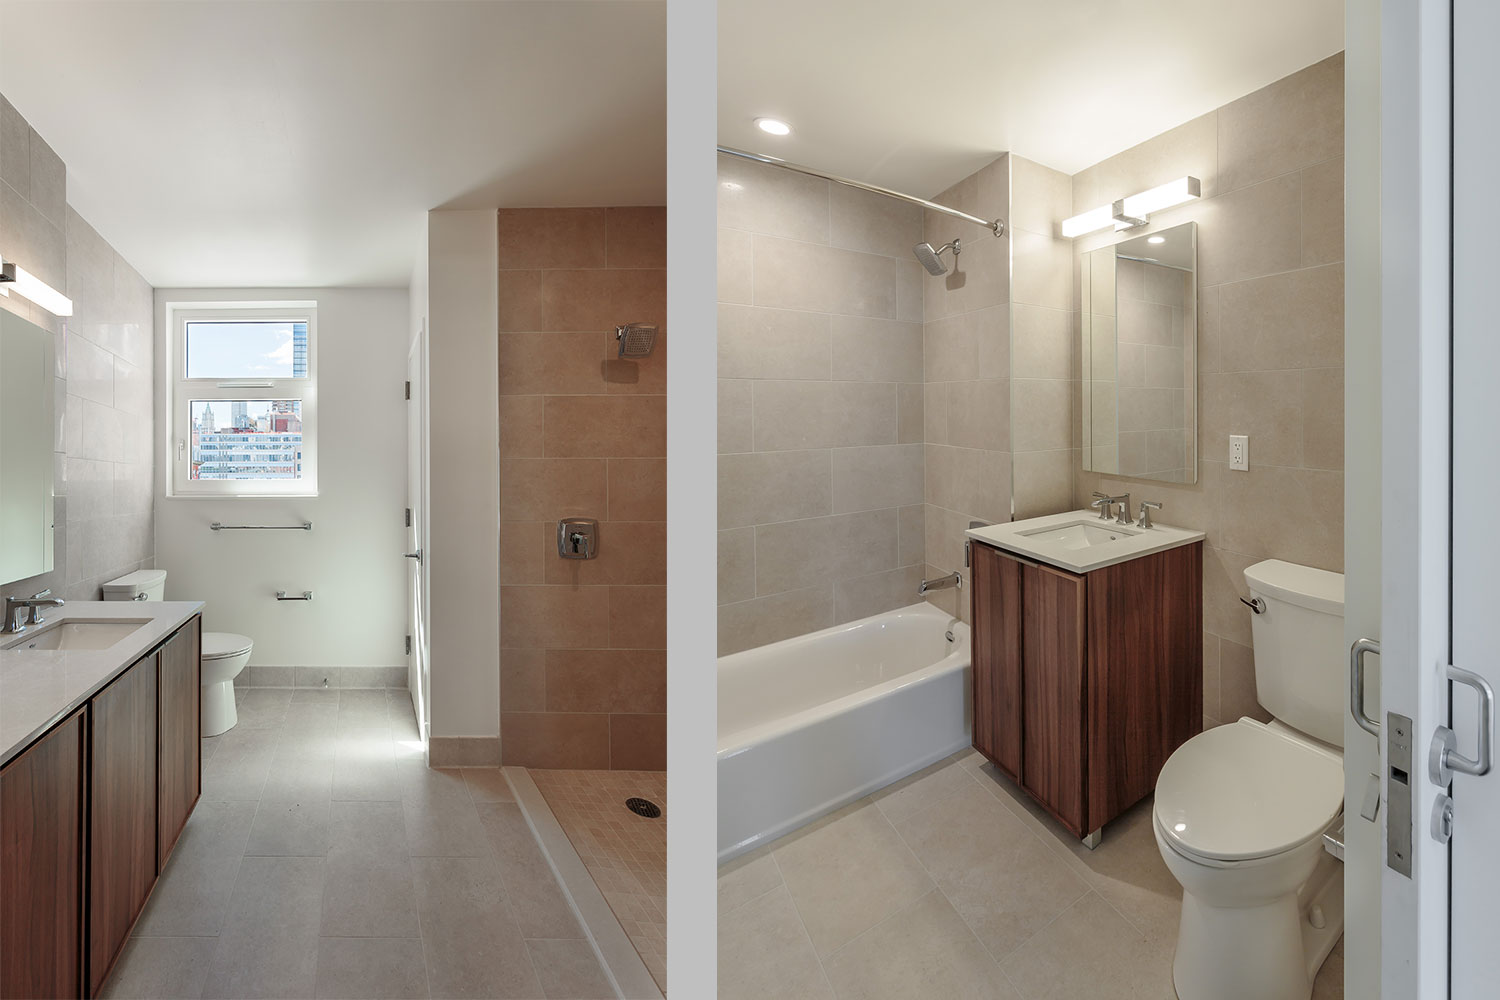 Bathrooms at Ponte Residences. Project by OCV Architects.